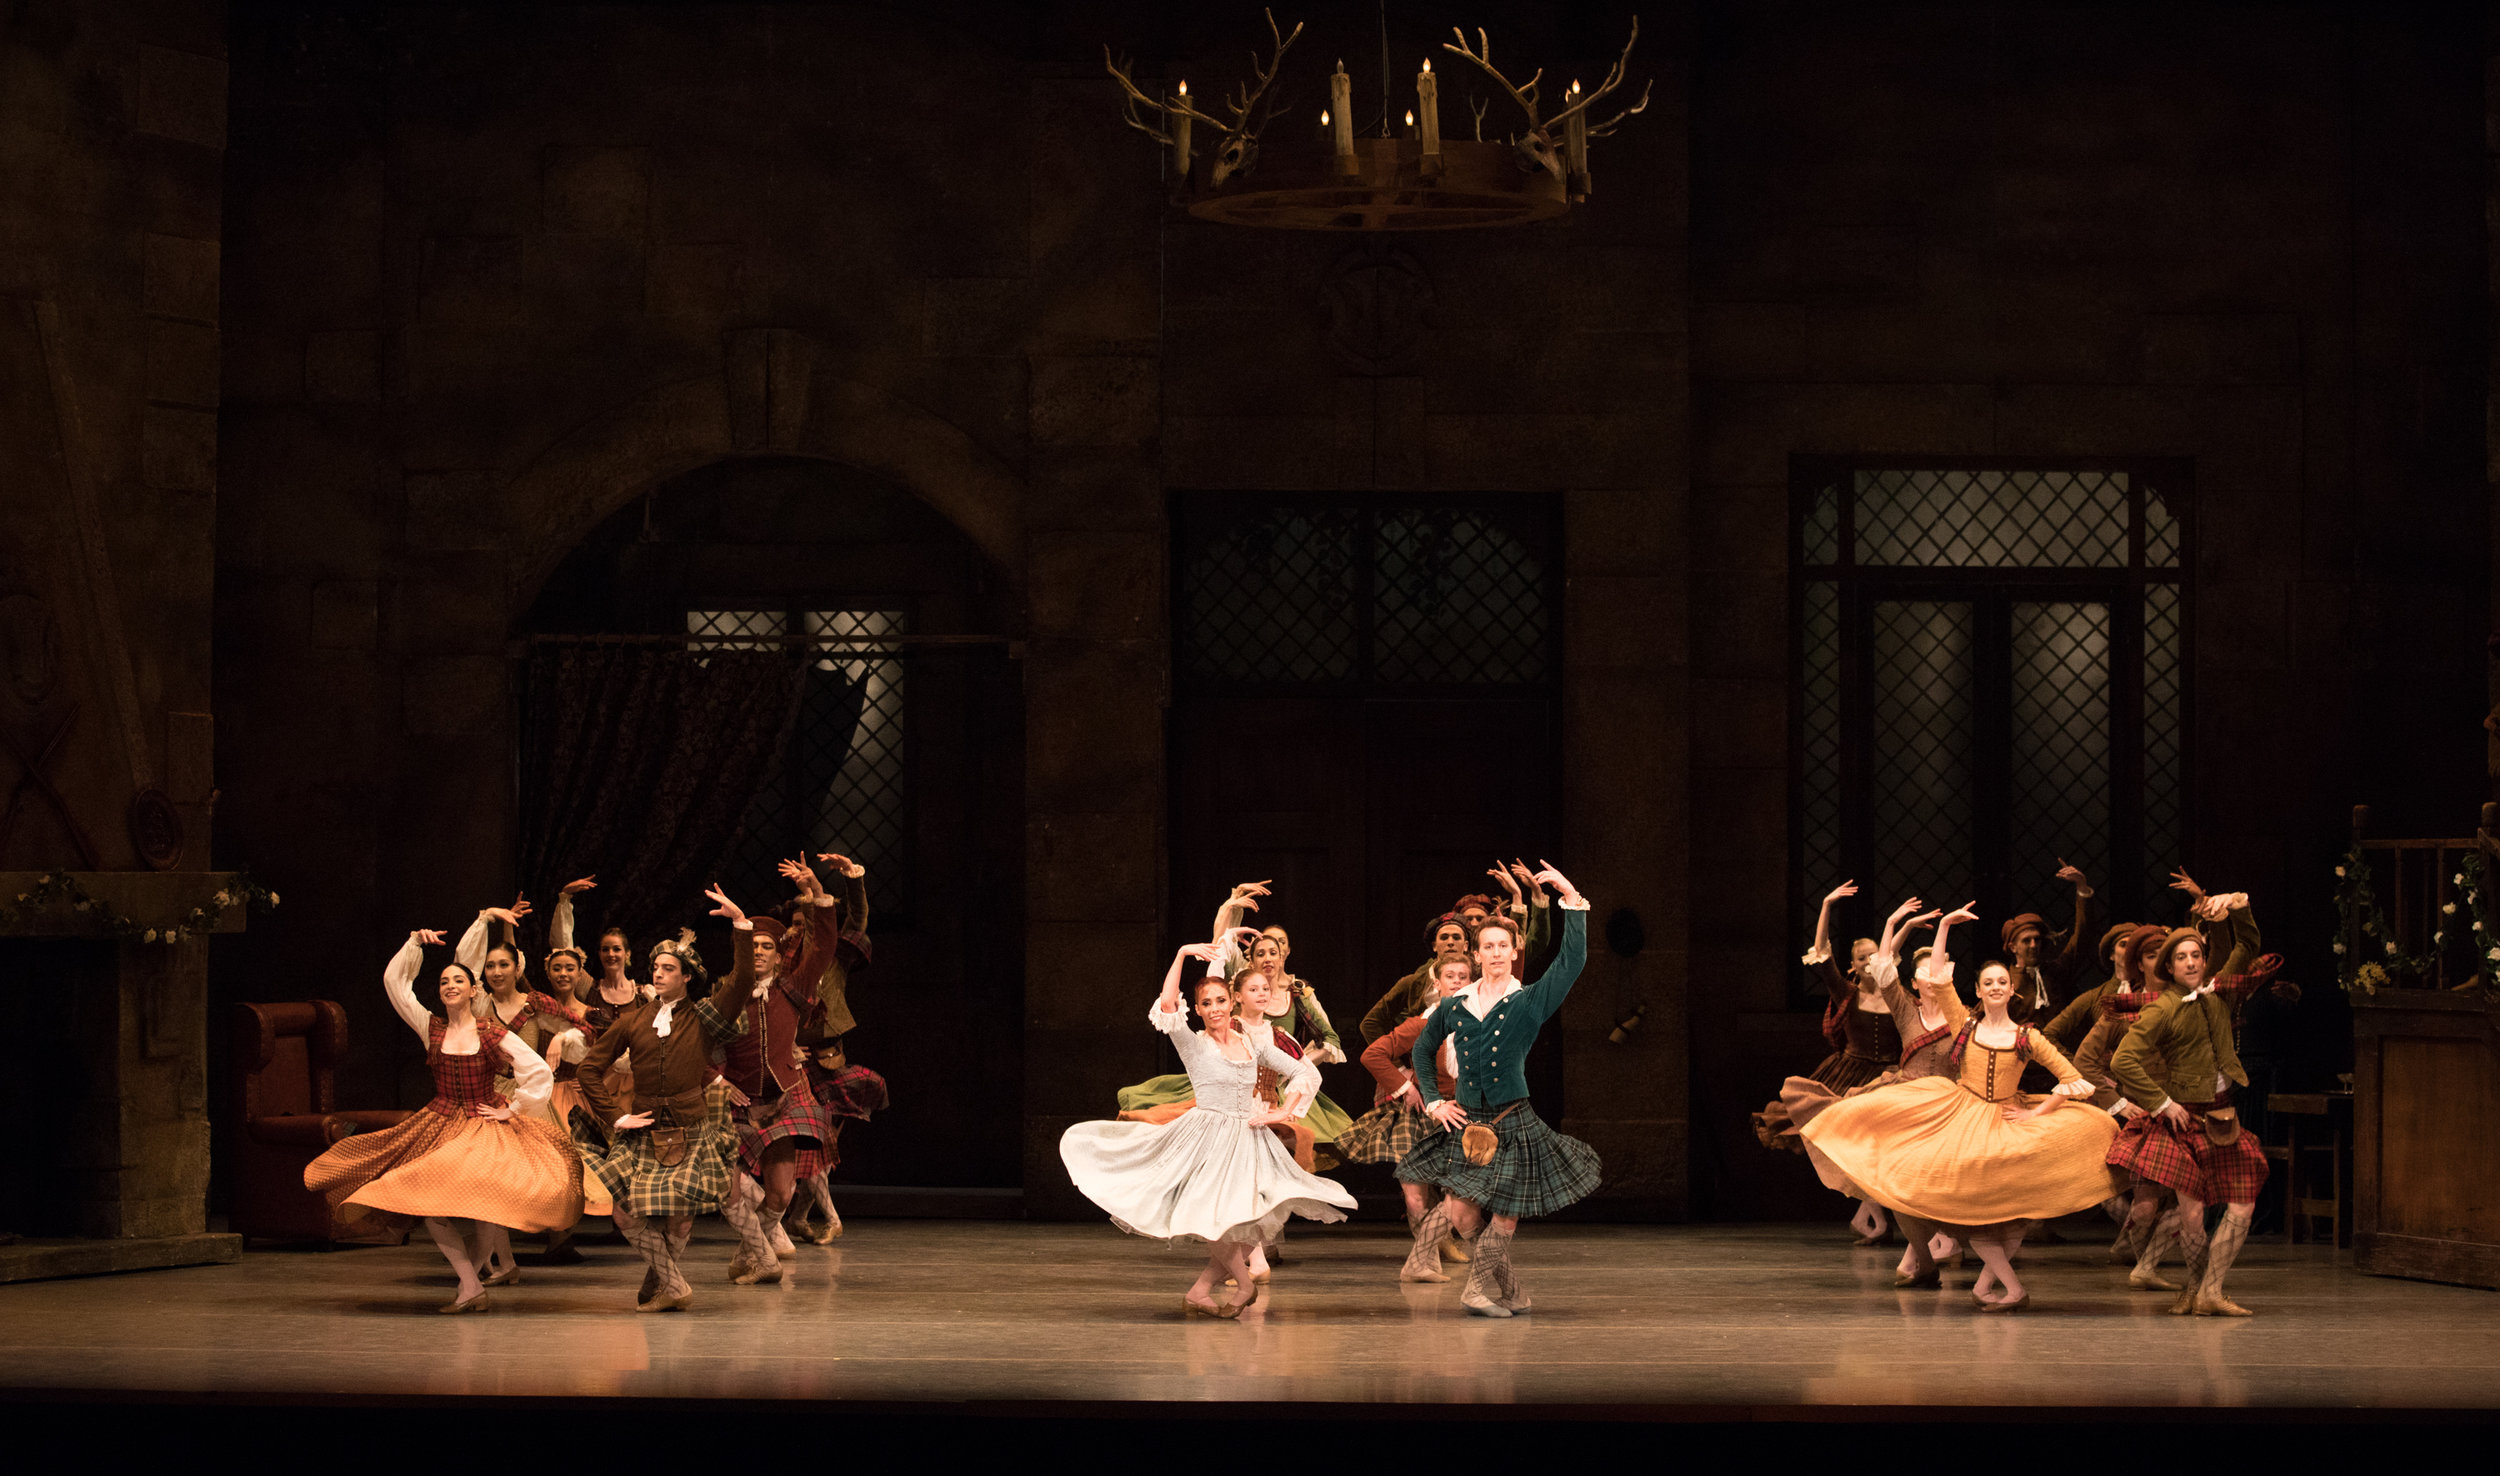 Photo Credit: Boston Ballet in August Bournonville's La Sylphide; photo by Rosalie O'Connor, courtesy Boston Ballet.